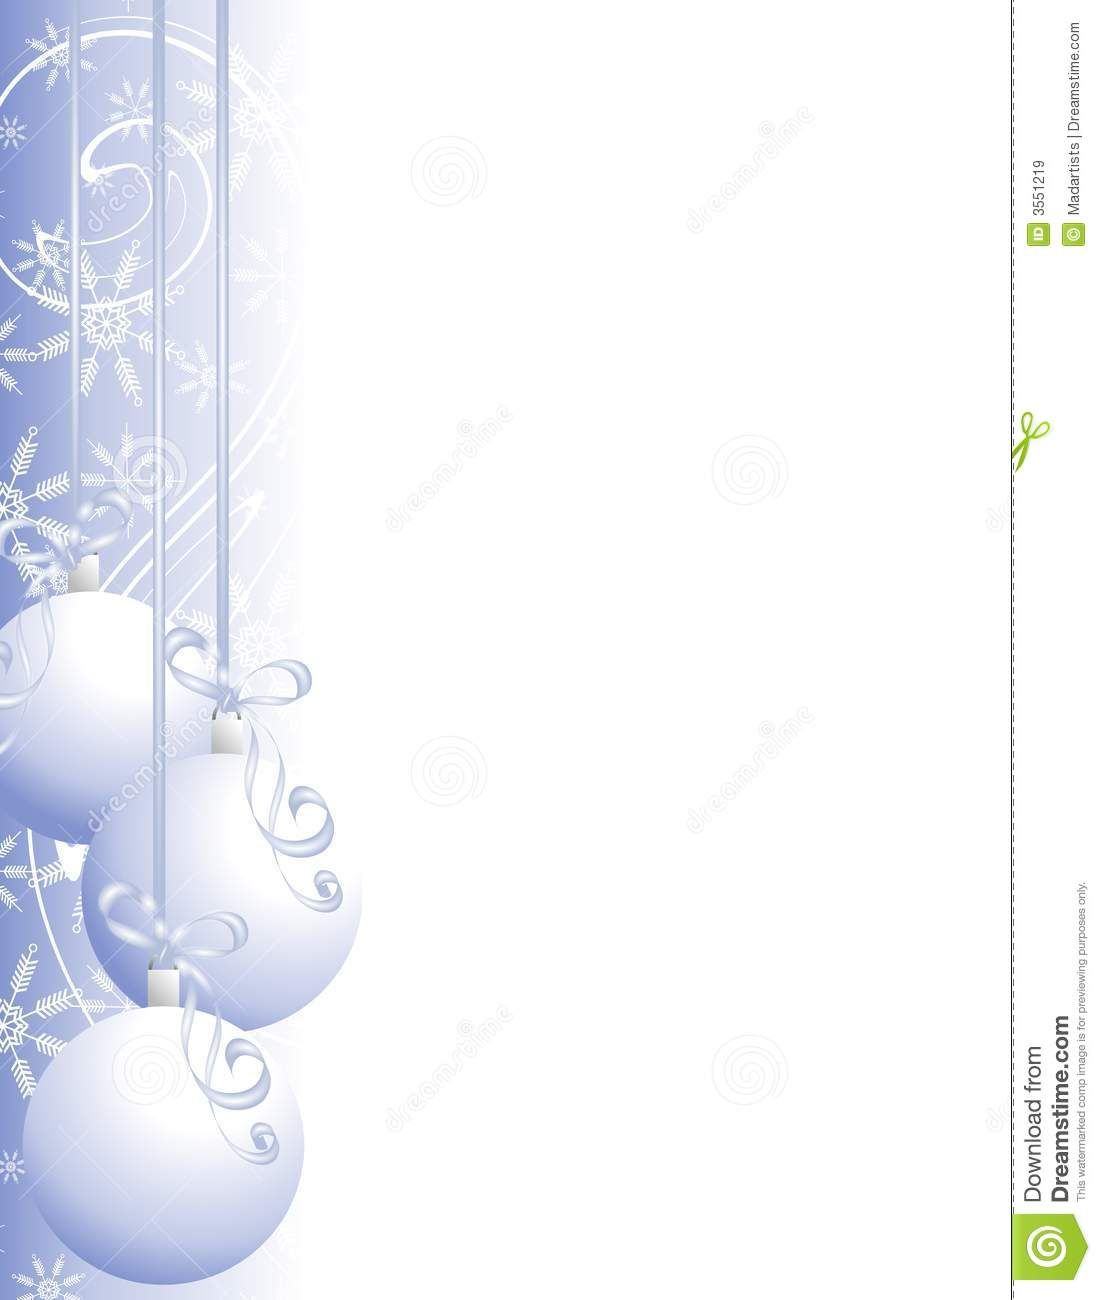 Christmas Ornaments Border 2 Royalty Free Stock Images